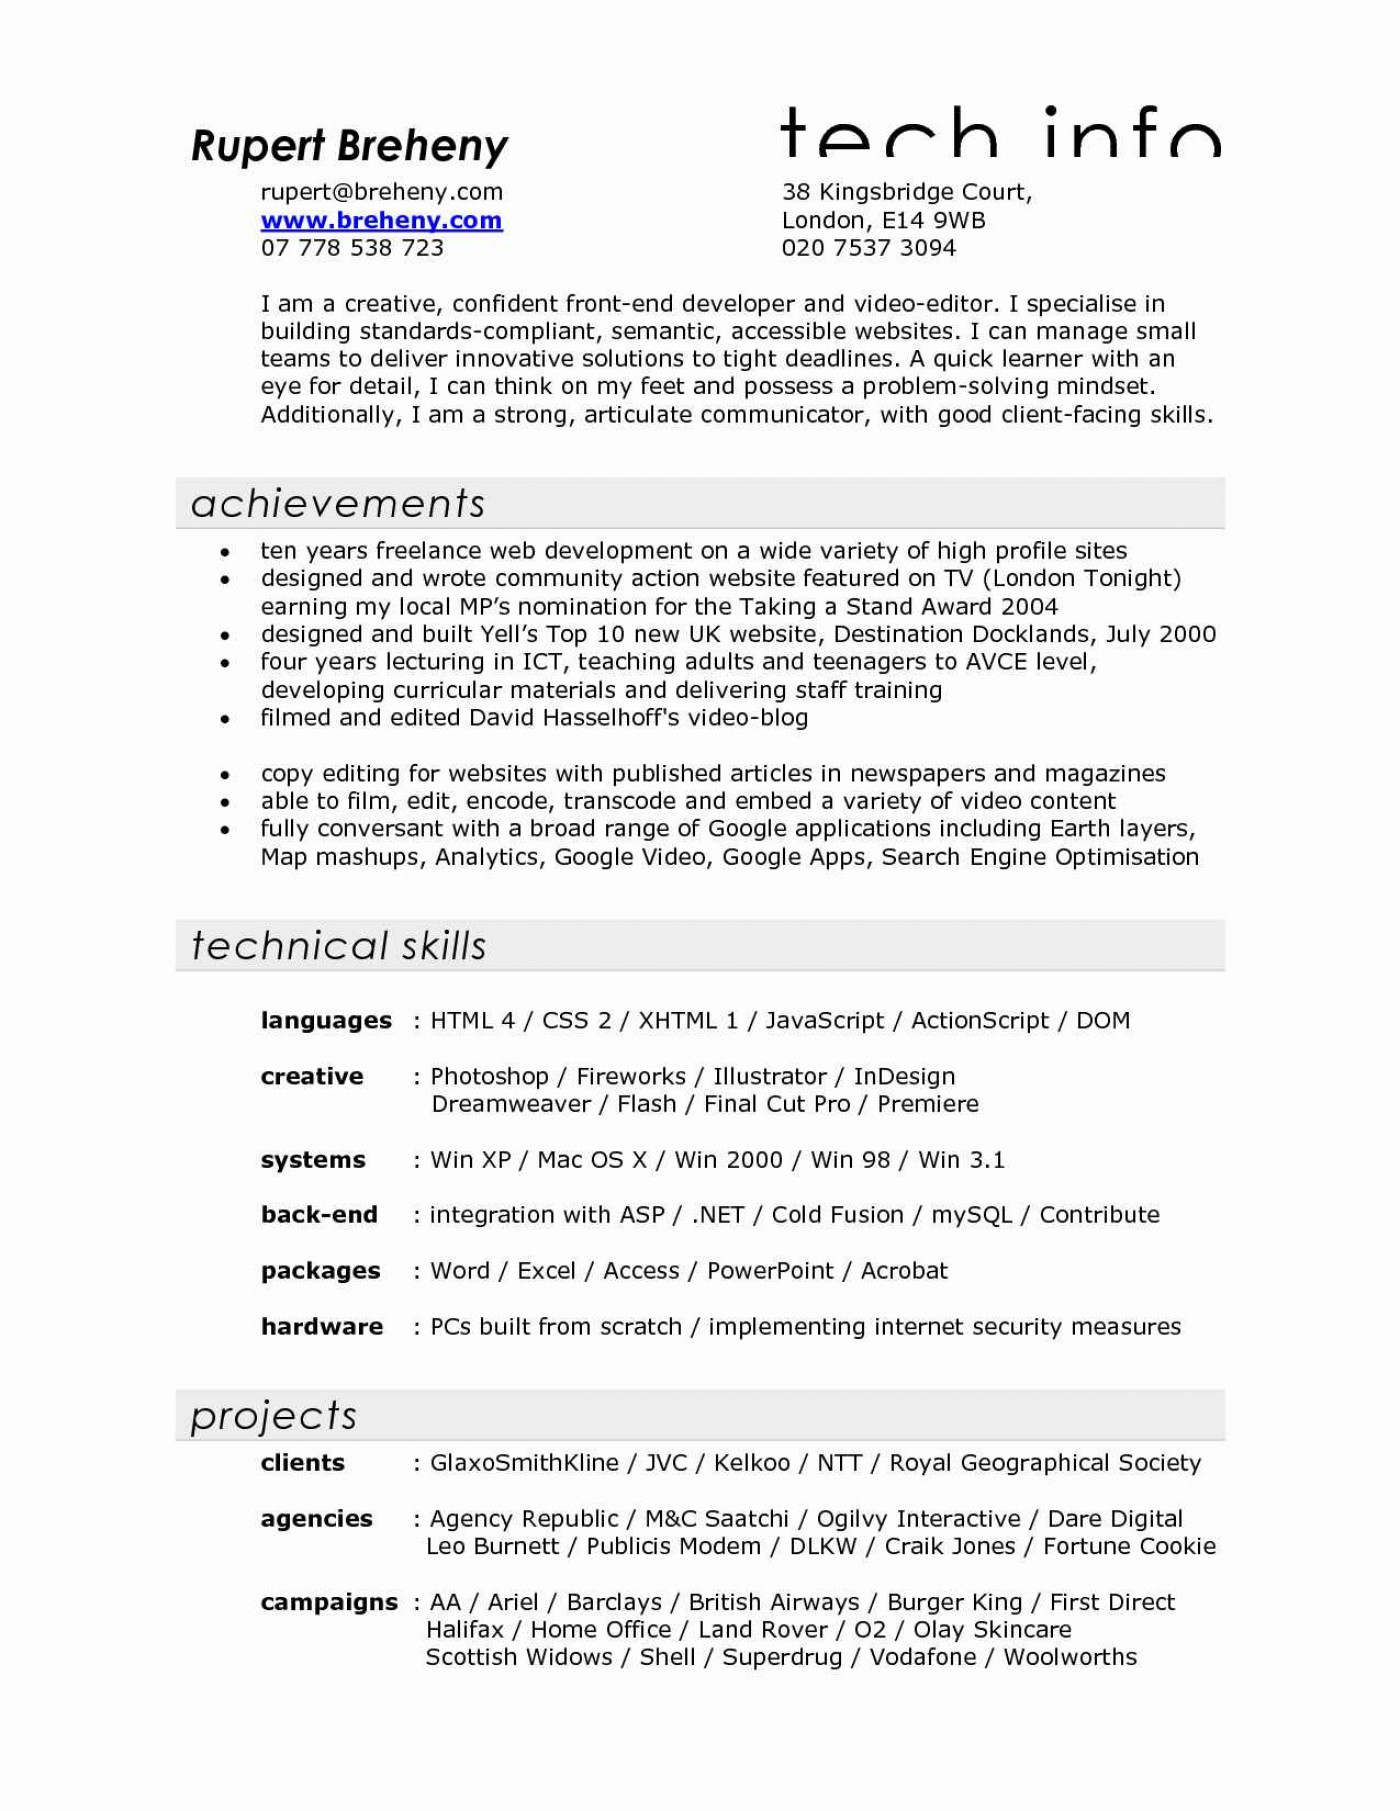 006 Essay Example Film Director Resume Template Inspirational Gre Awa Analytical Writing Solutions To The Real Topics Pdf Free Downlo Book Books Download Test Prep Incredible 1400